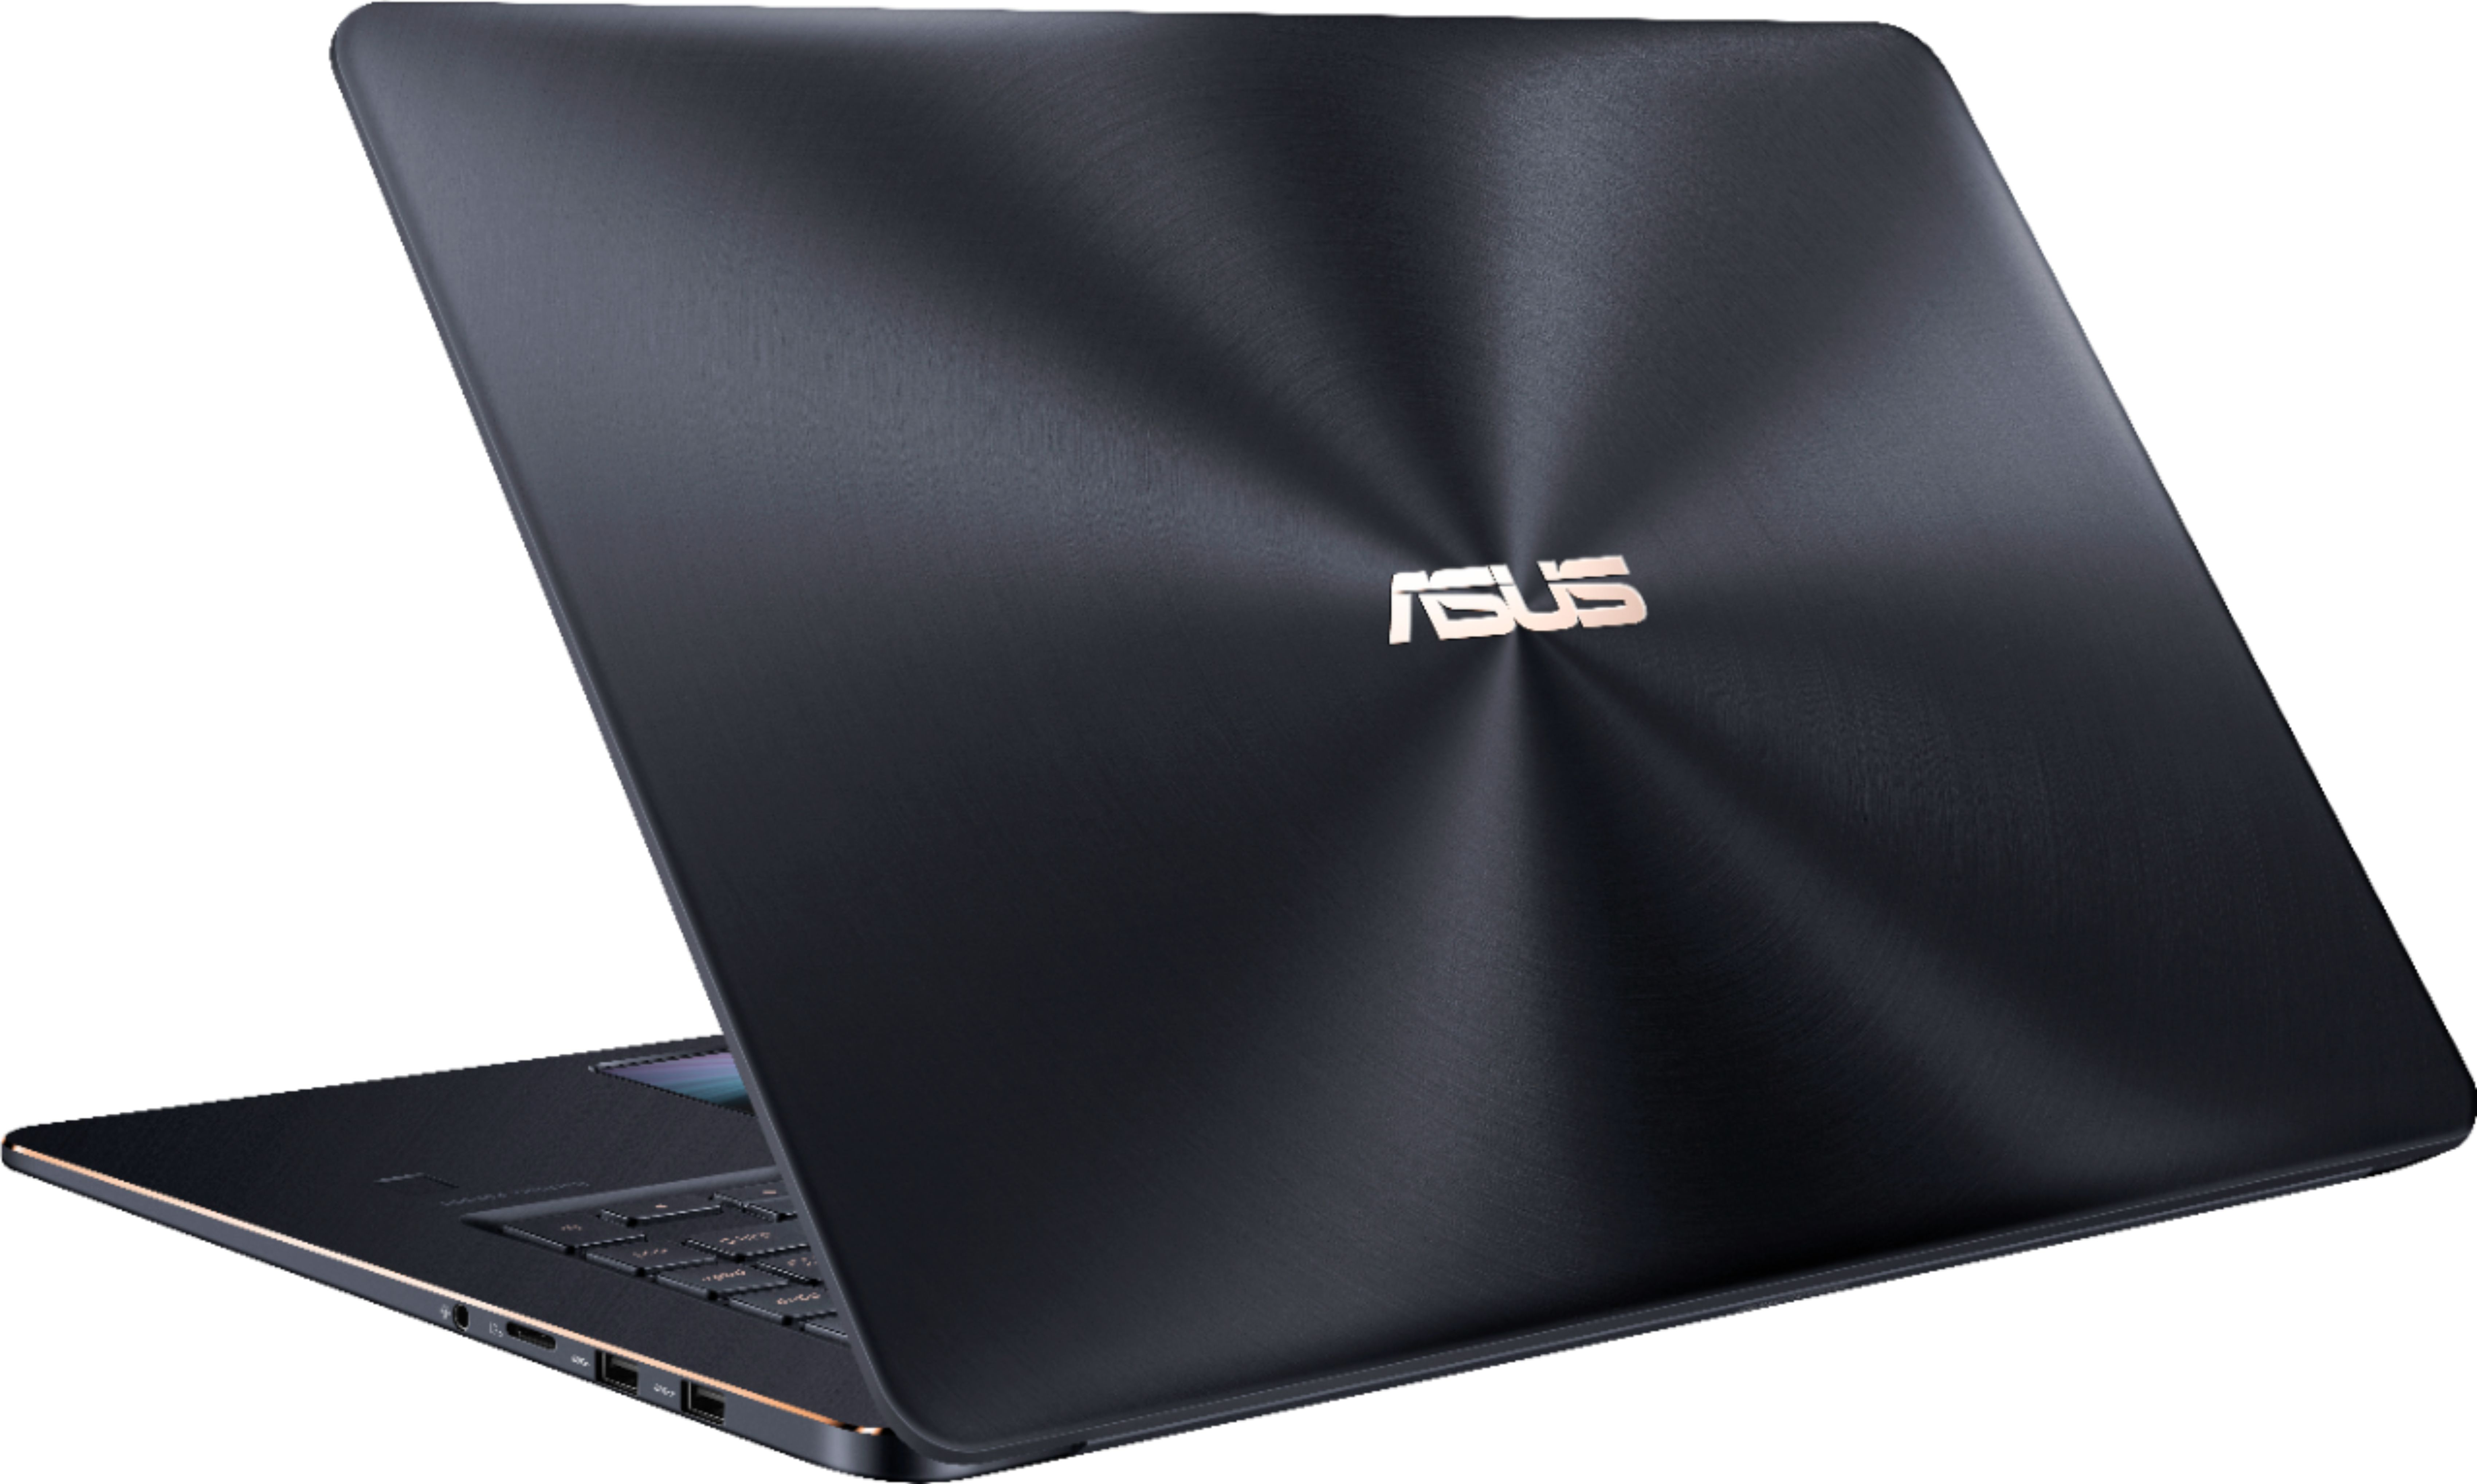 "Alt View Zoom 1. ASUS - Geek Squad Certified Refurbished 15.6"" Laptop - Intel Core i7 - 16GB Memory - NVIDIA GeForce GTX 1050 - 512GB SSD - Deep Dive Blue."